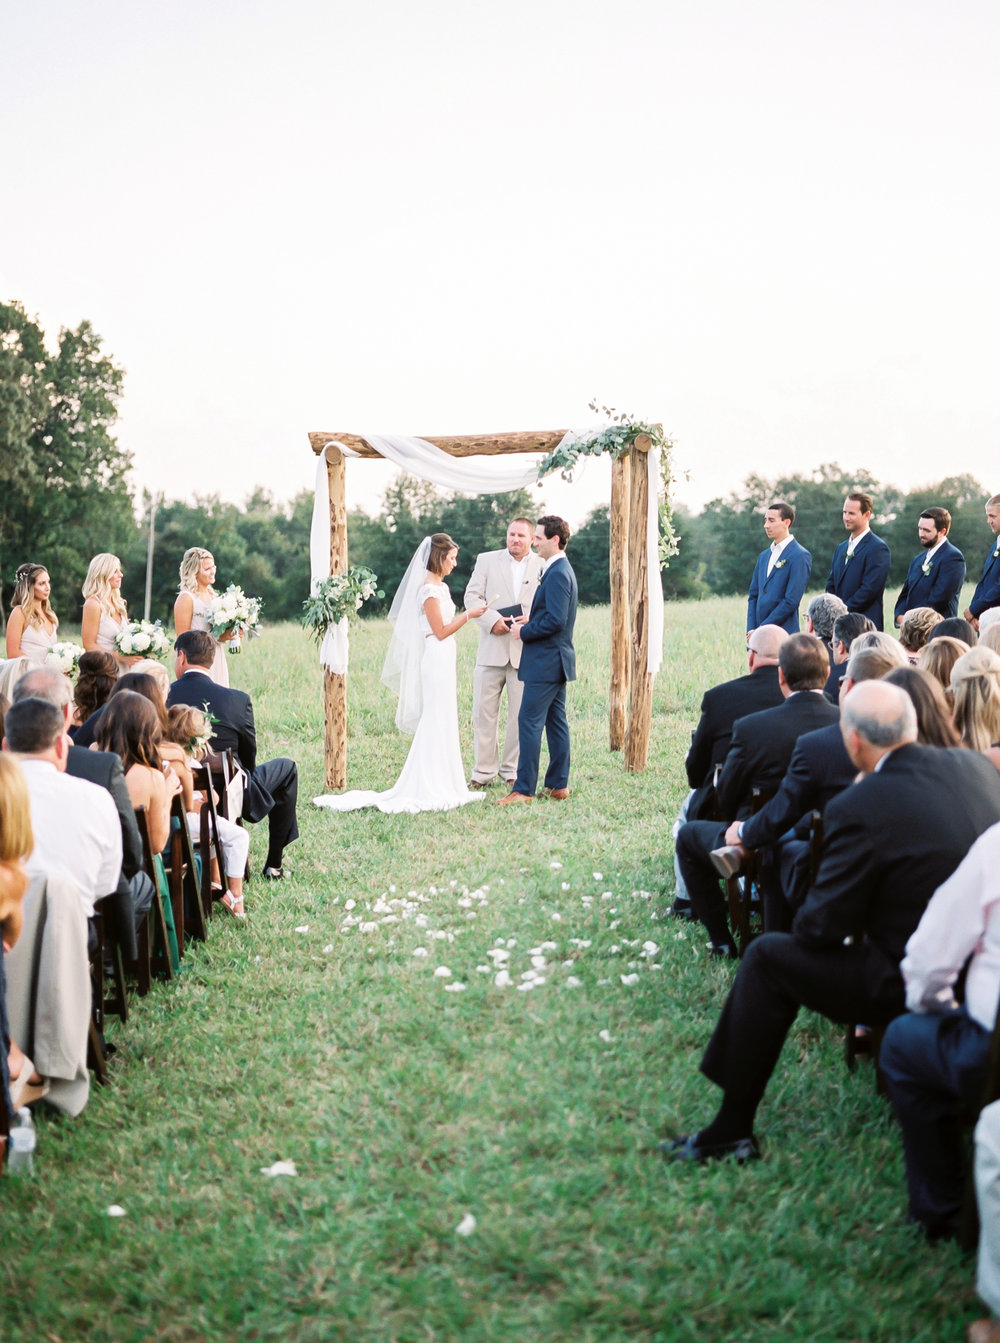 reading vows in ceremony idea